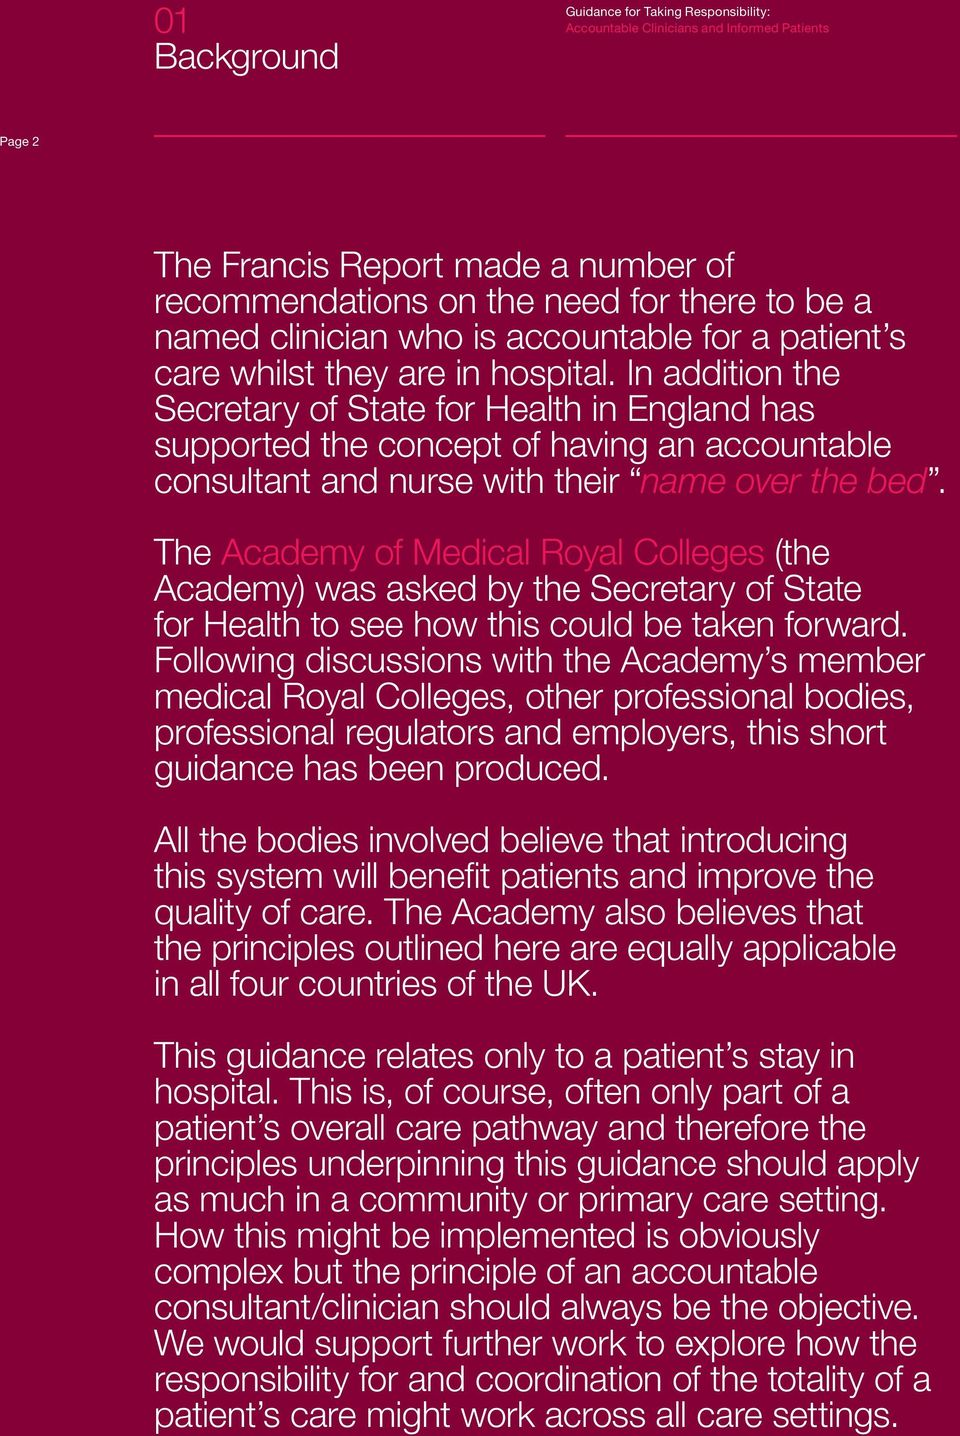 The Academy of Medical Royal Colleges (the Academy) was asked by the Secretary of State for Health to see how this could be taken forward.